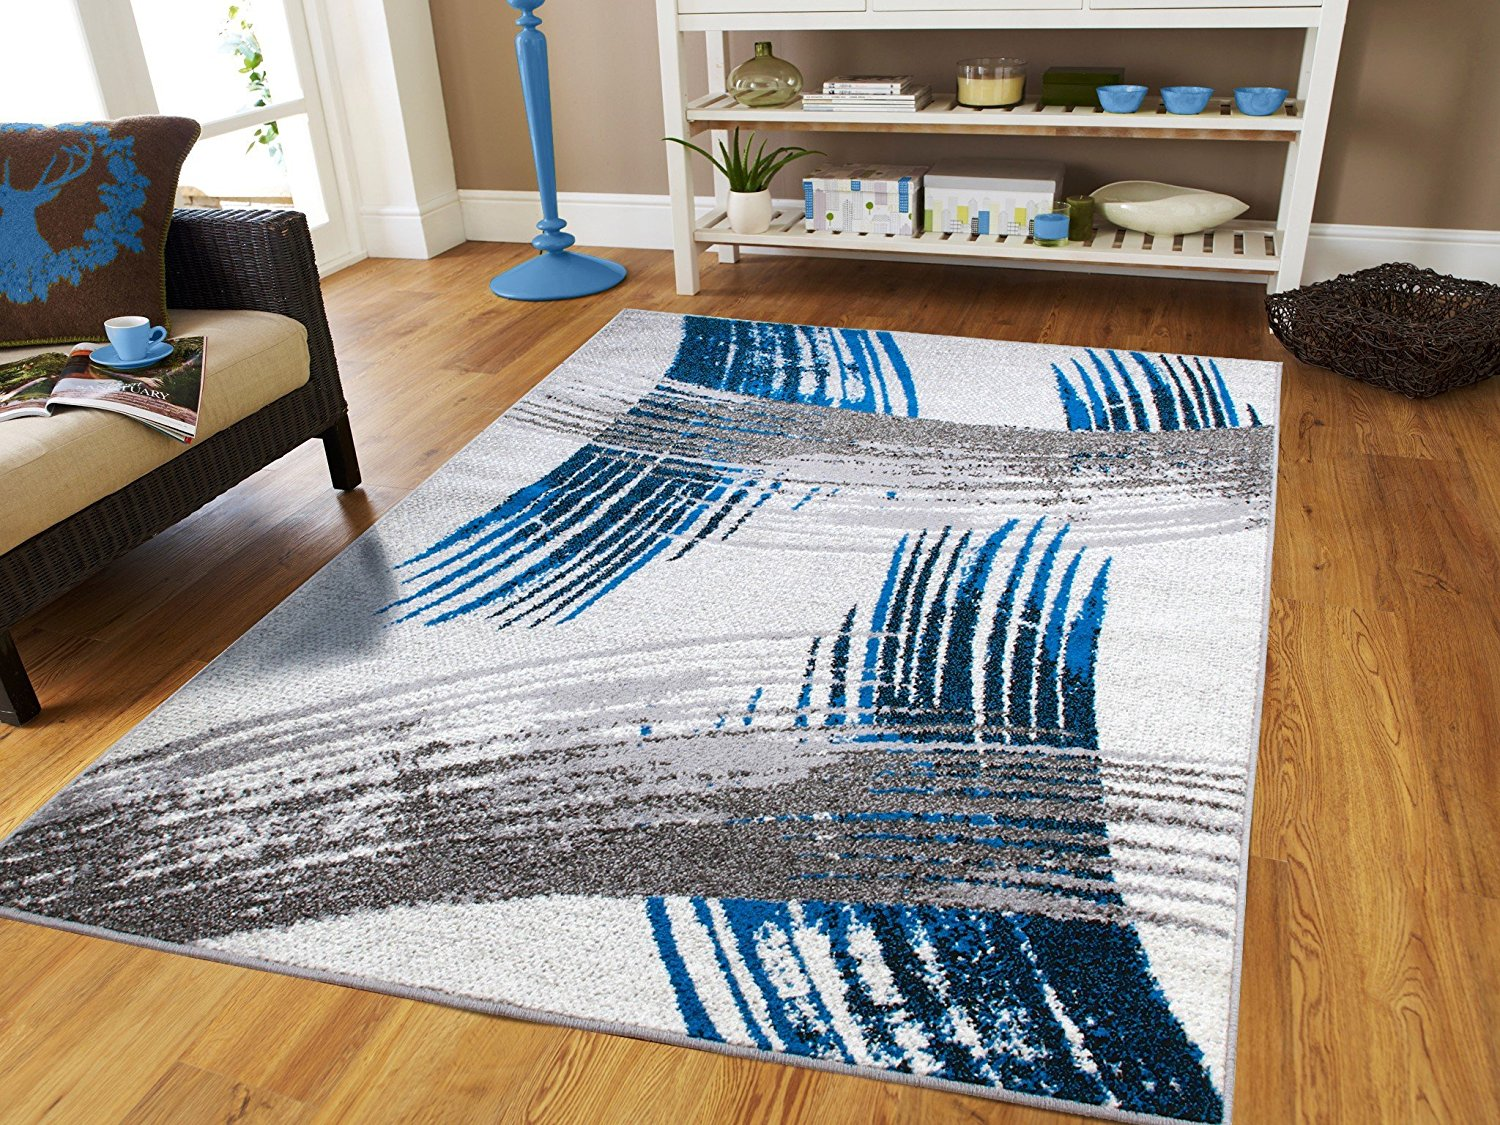 Huge Rugs For Living Room Large Rugs On Clearance 8 By 10 Blue Living Room Rugs 8x10 Area Rugs Under 100 Dining Room Rugs For Under The Table